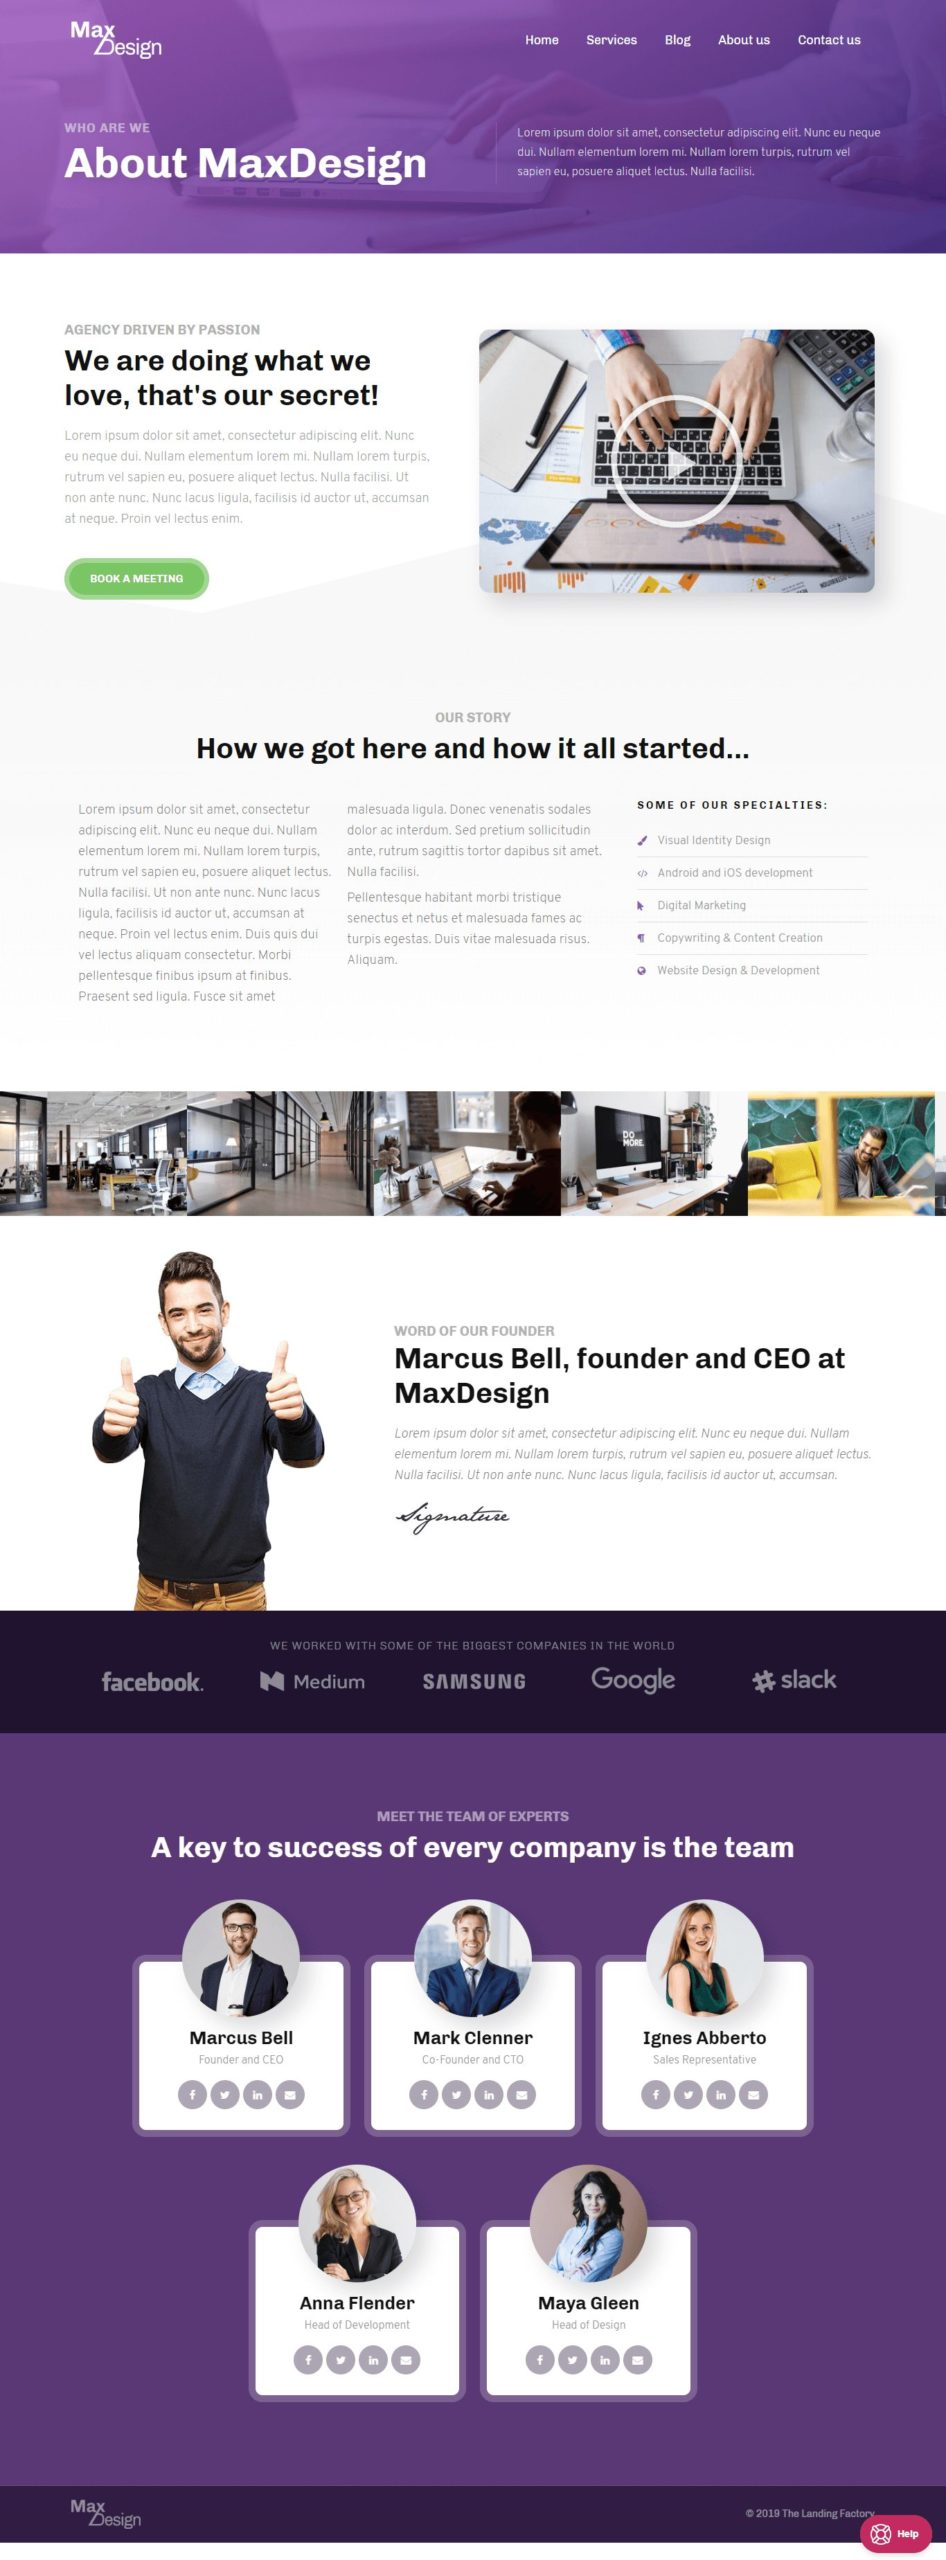 Max Design About